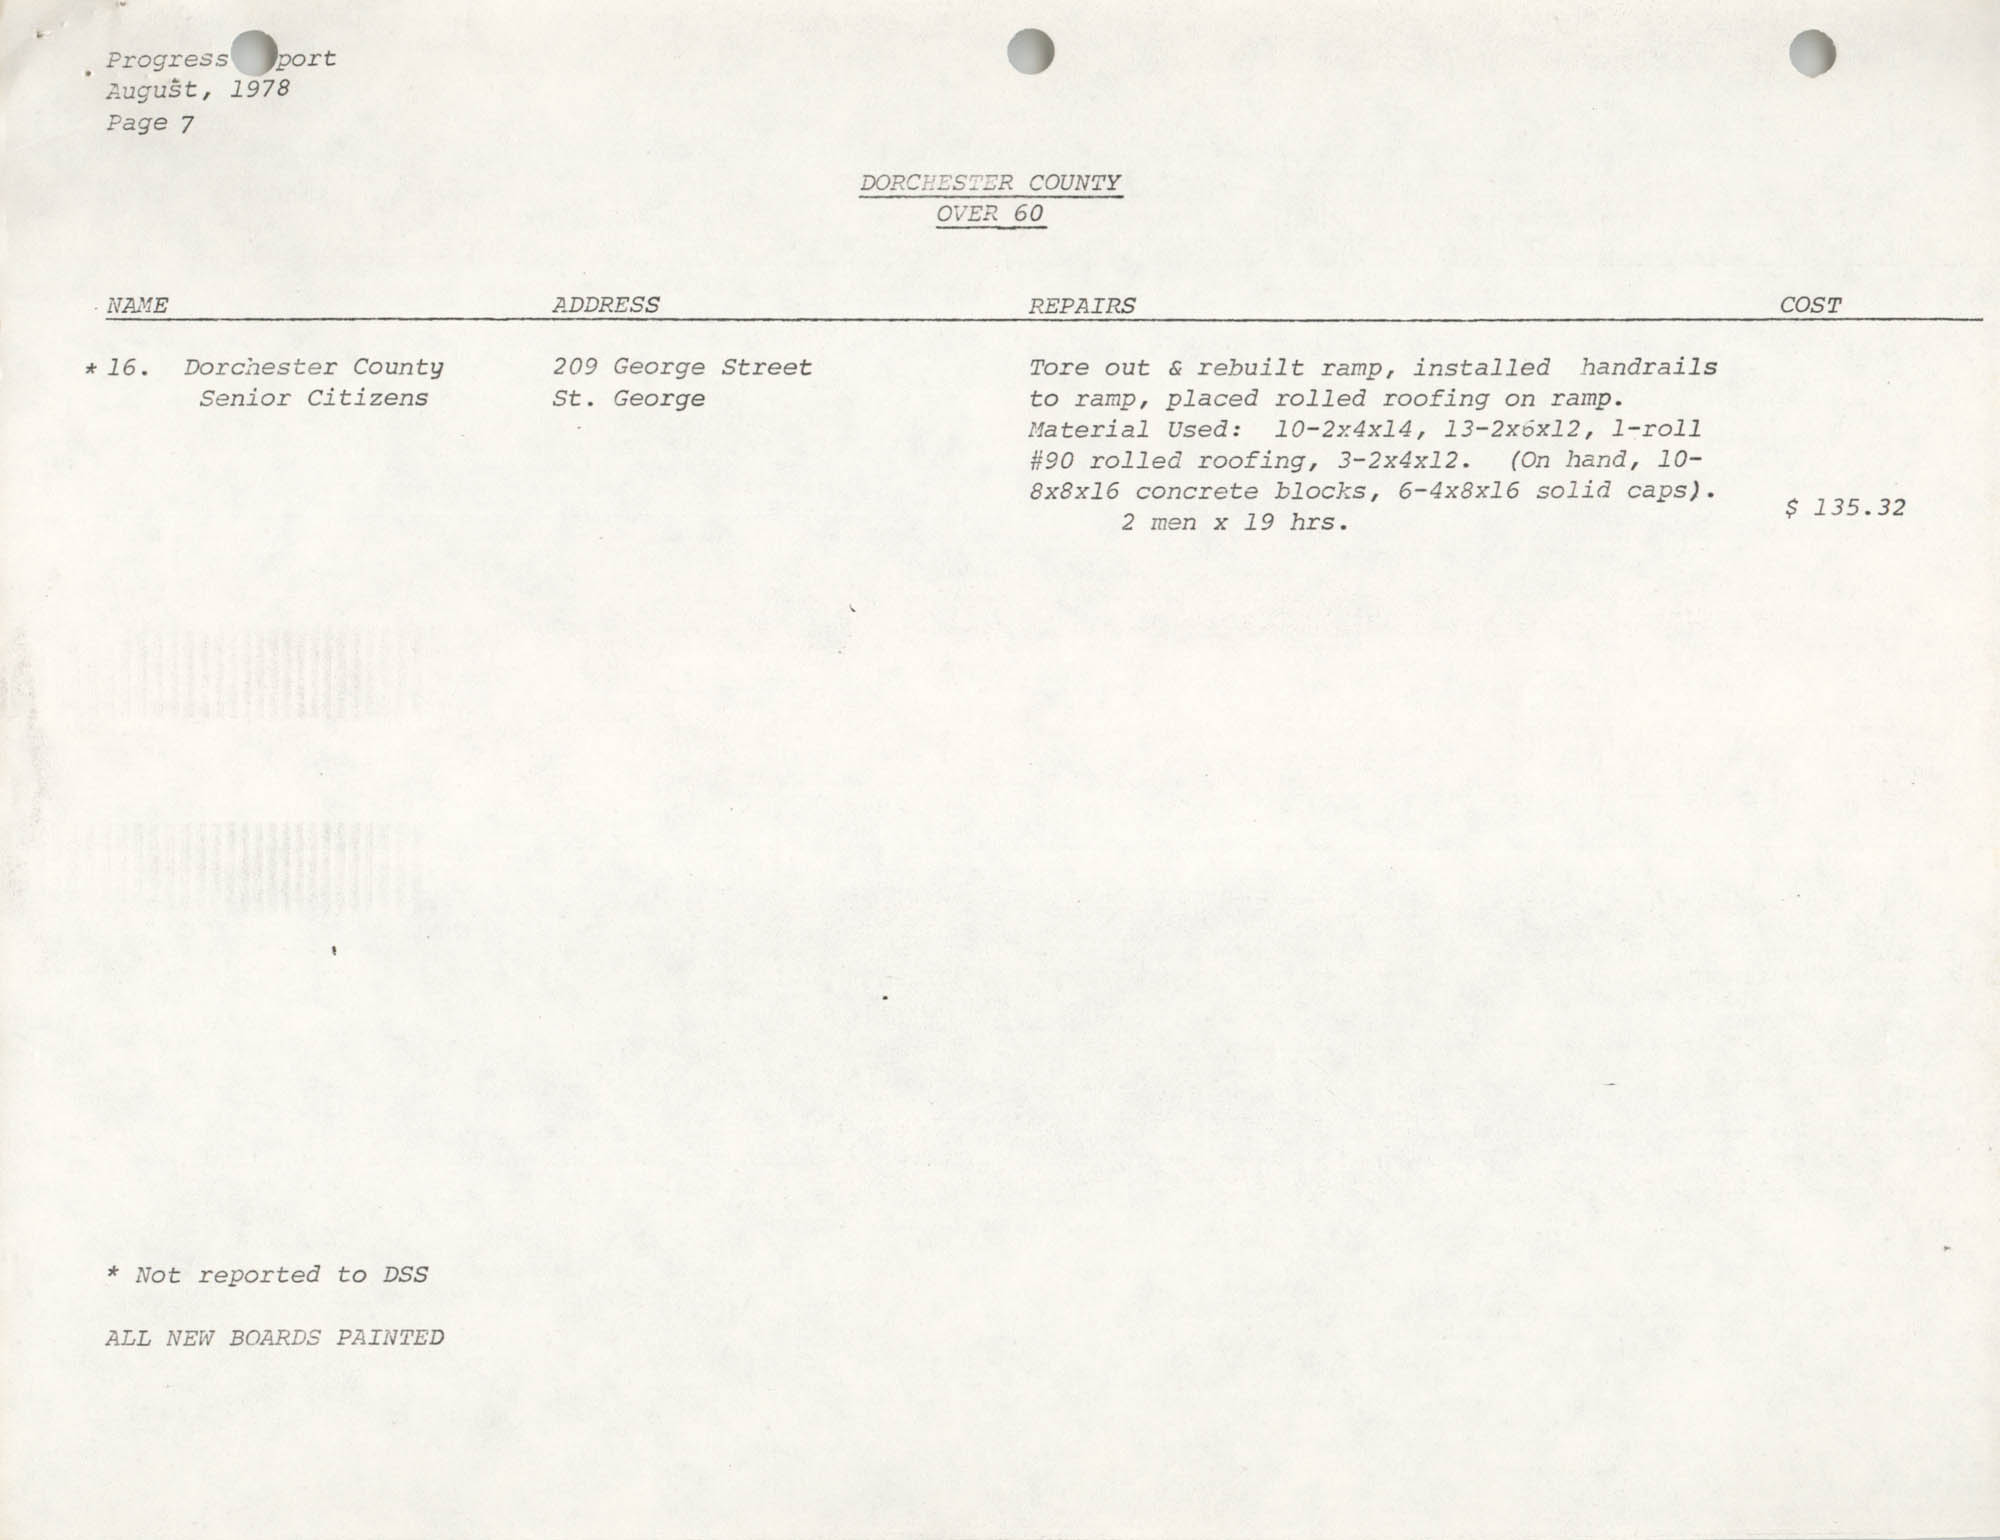 Housing Assistance Program Report, August 1978, Page 7